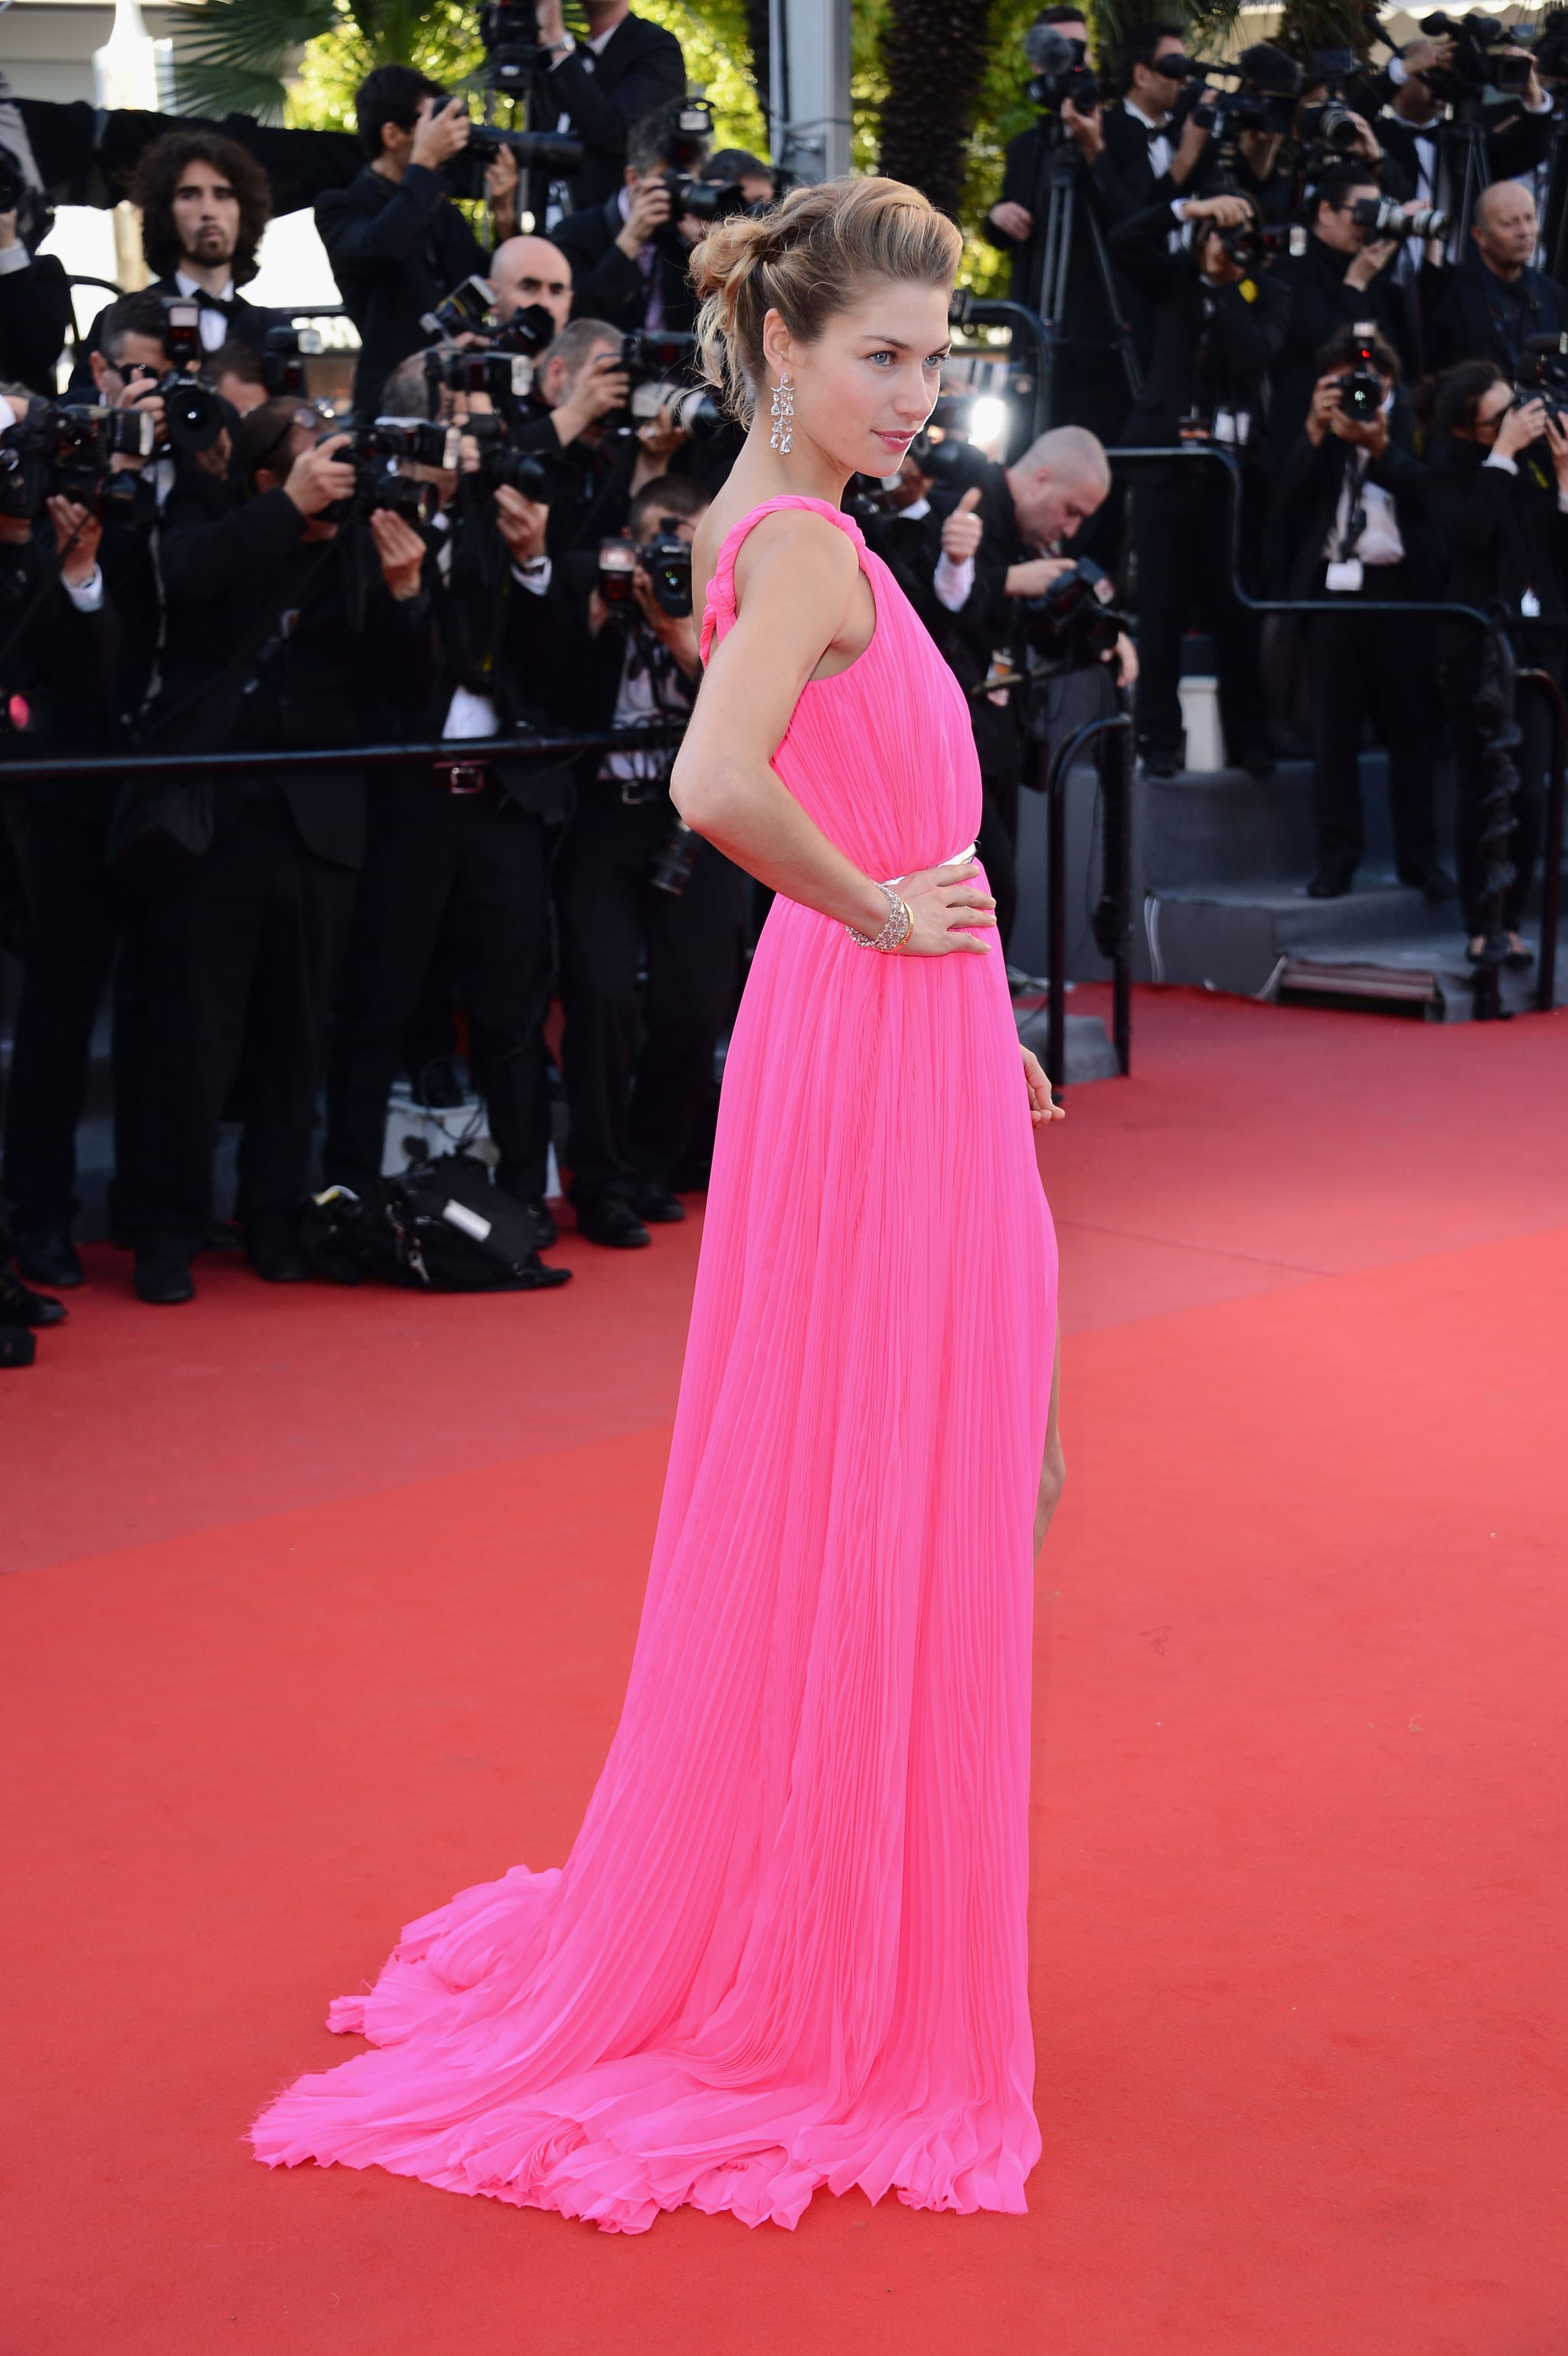 Jessica Hart at the Cannes premiere of Behind the Candelabra.